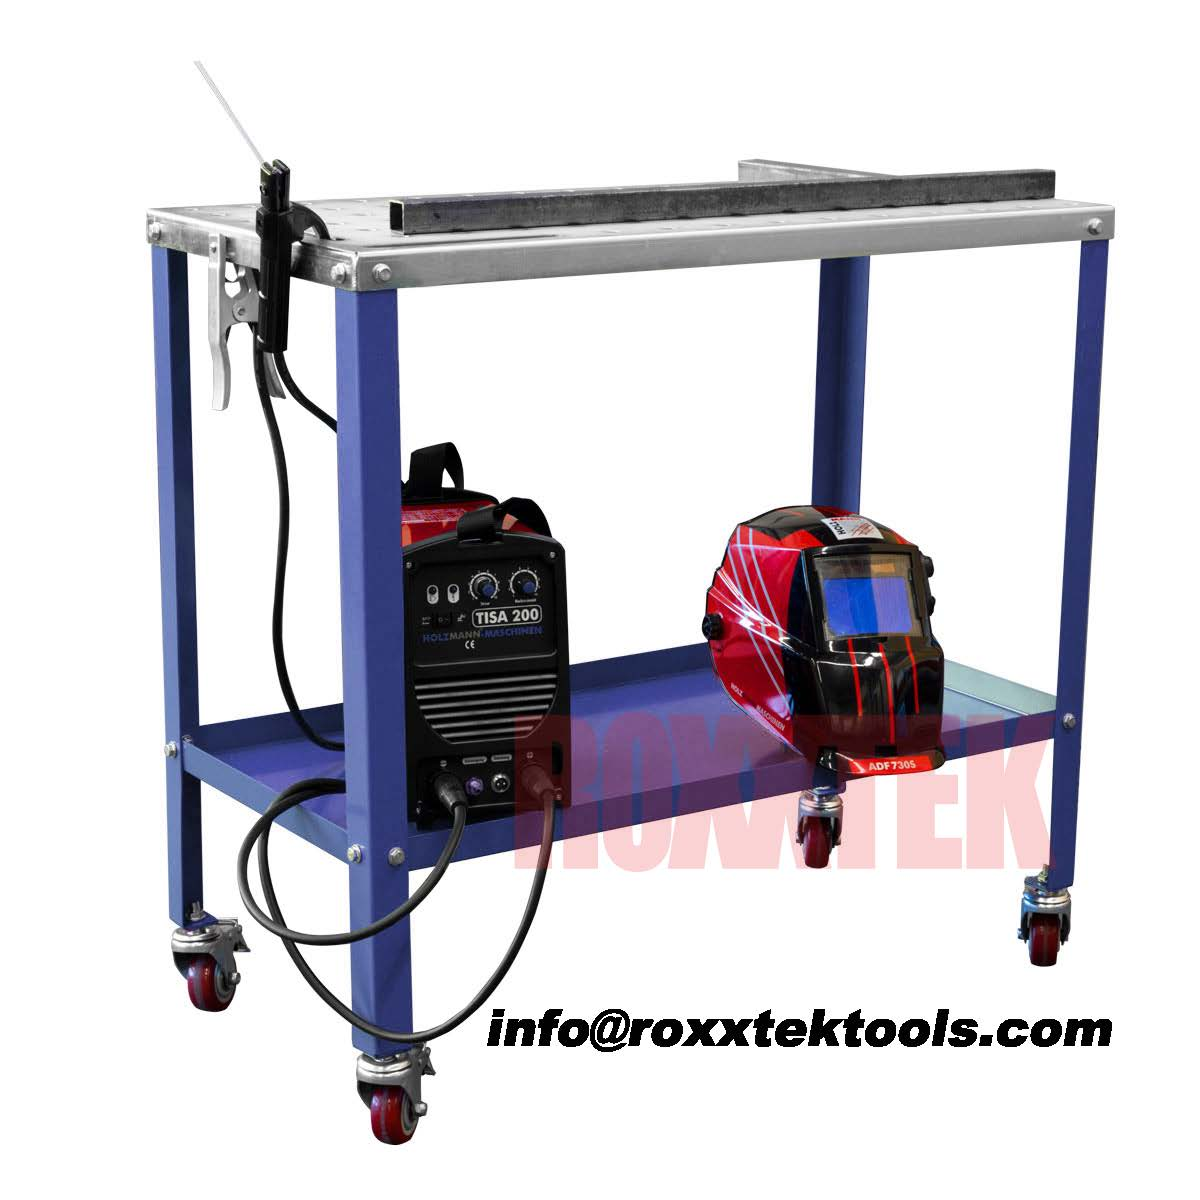 WT1836 Iron-Man Welding Table